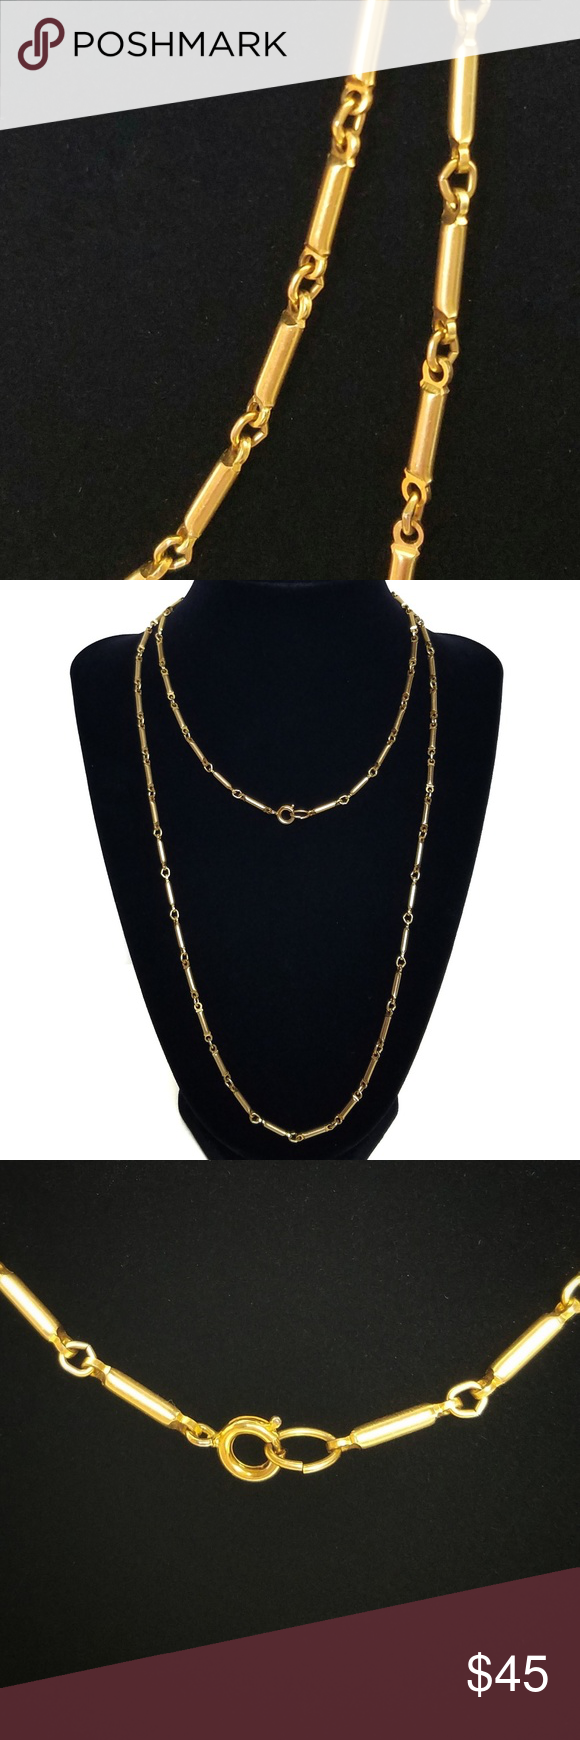 Long Tube Chain 14kgp Necklace Womens Fashion Jewelry Fashion Jewelry Gold Jewelry Fashion